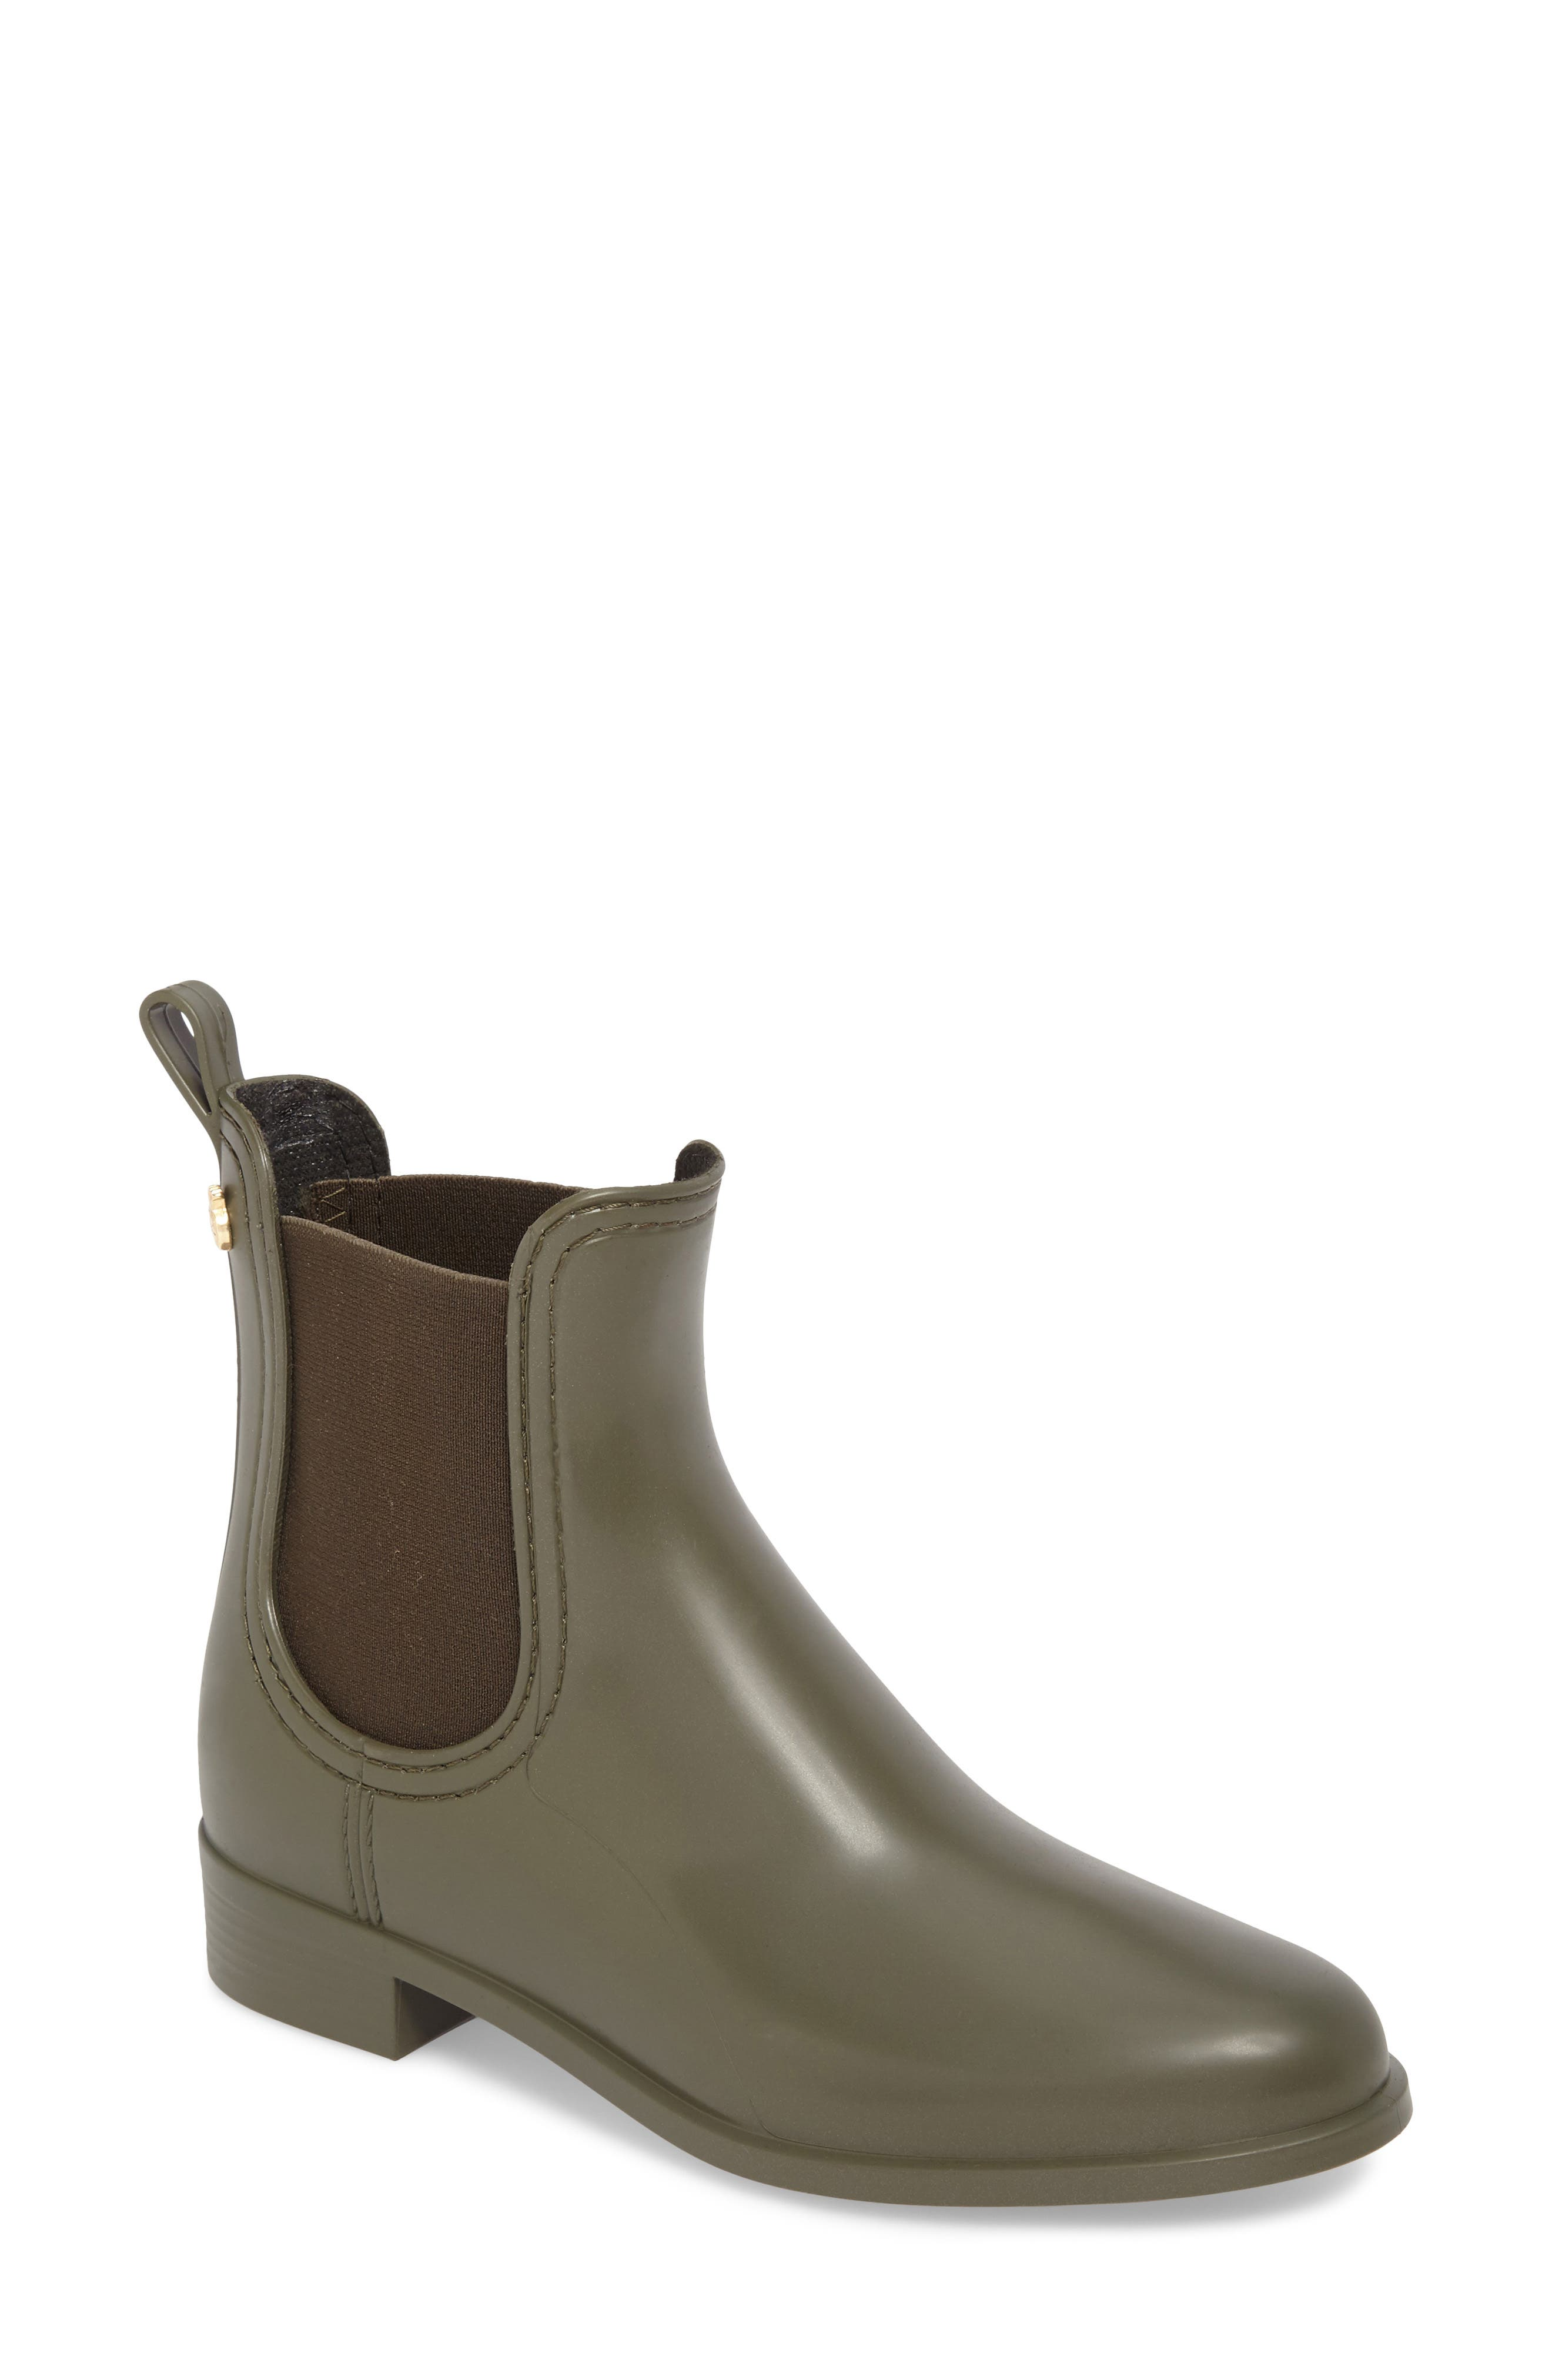 Splash Waterproof Chelsea Boot,                             Main thumbnail 1, color,                             Metal Green Matte